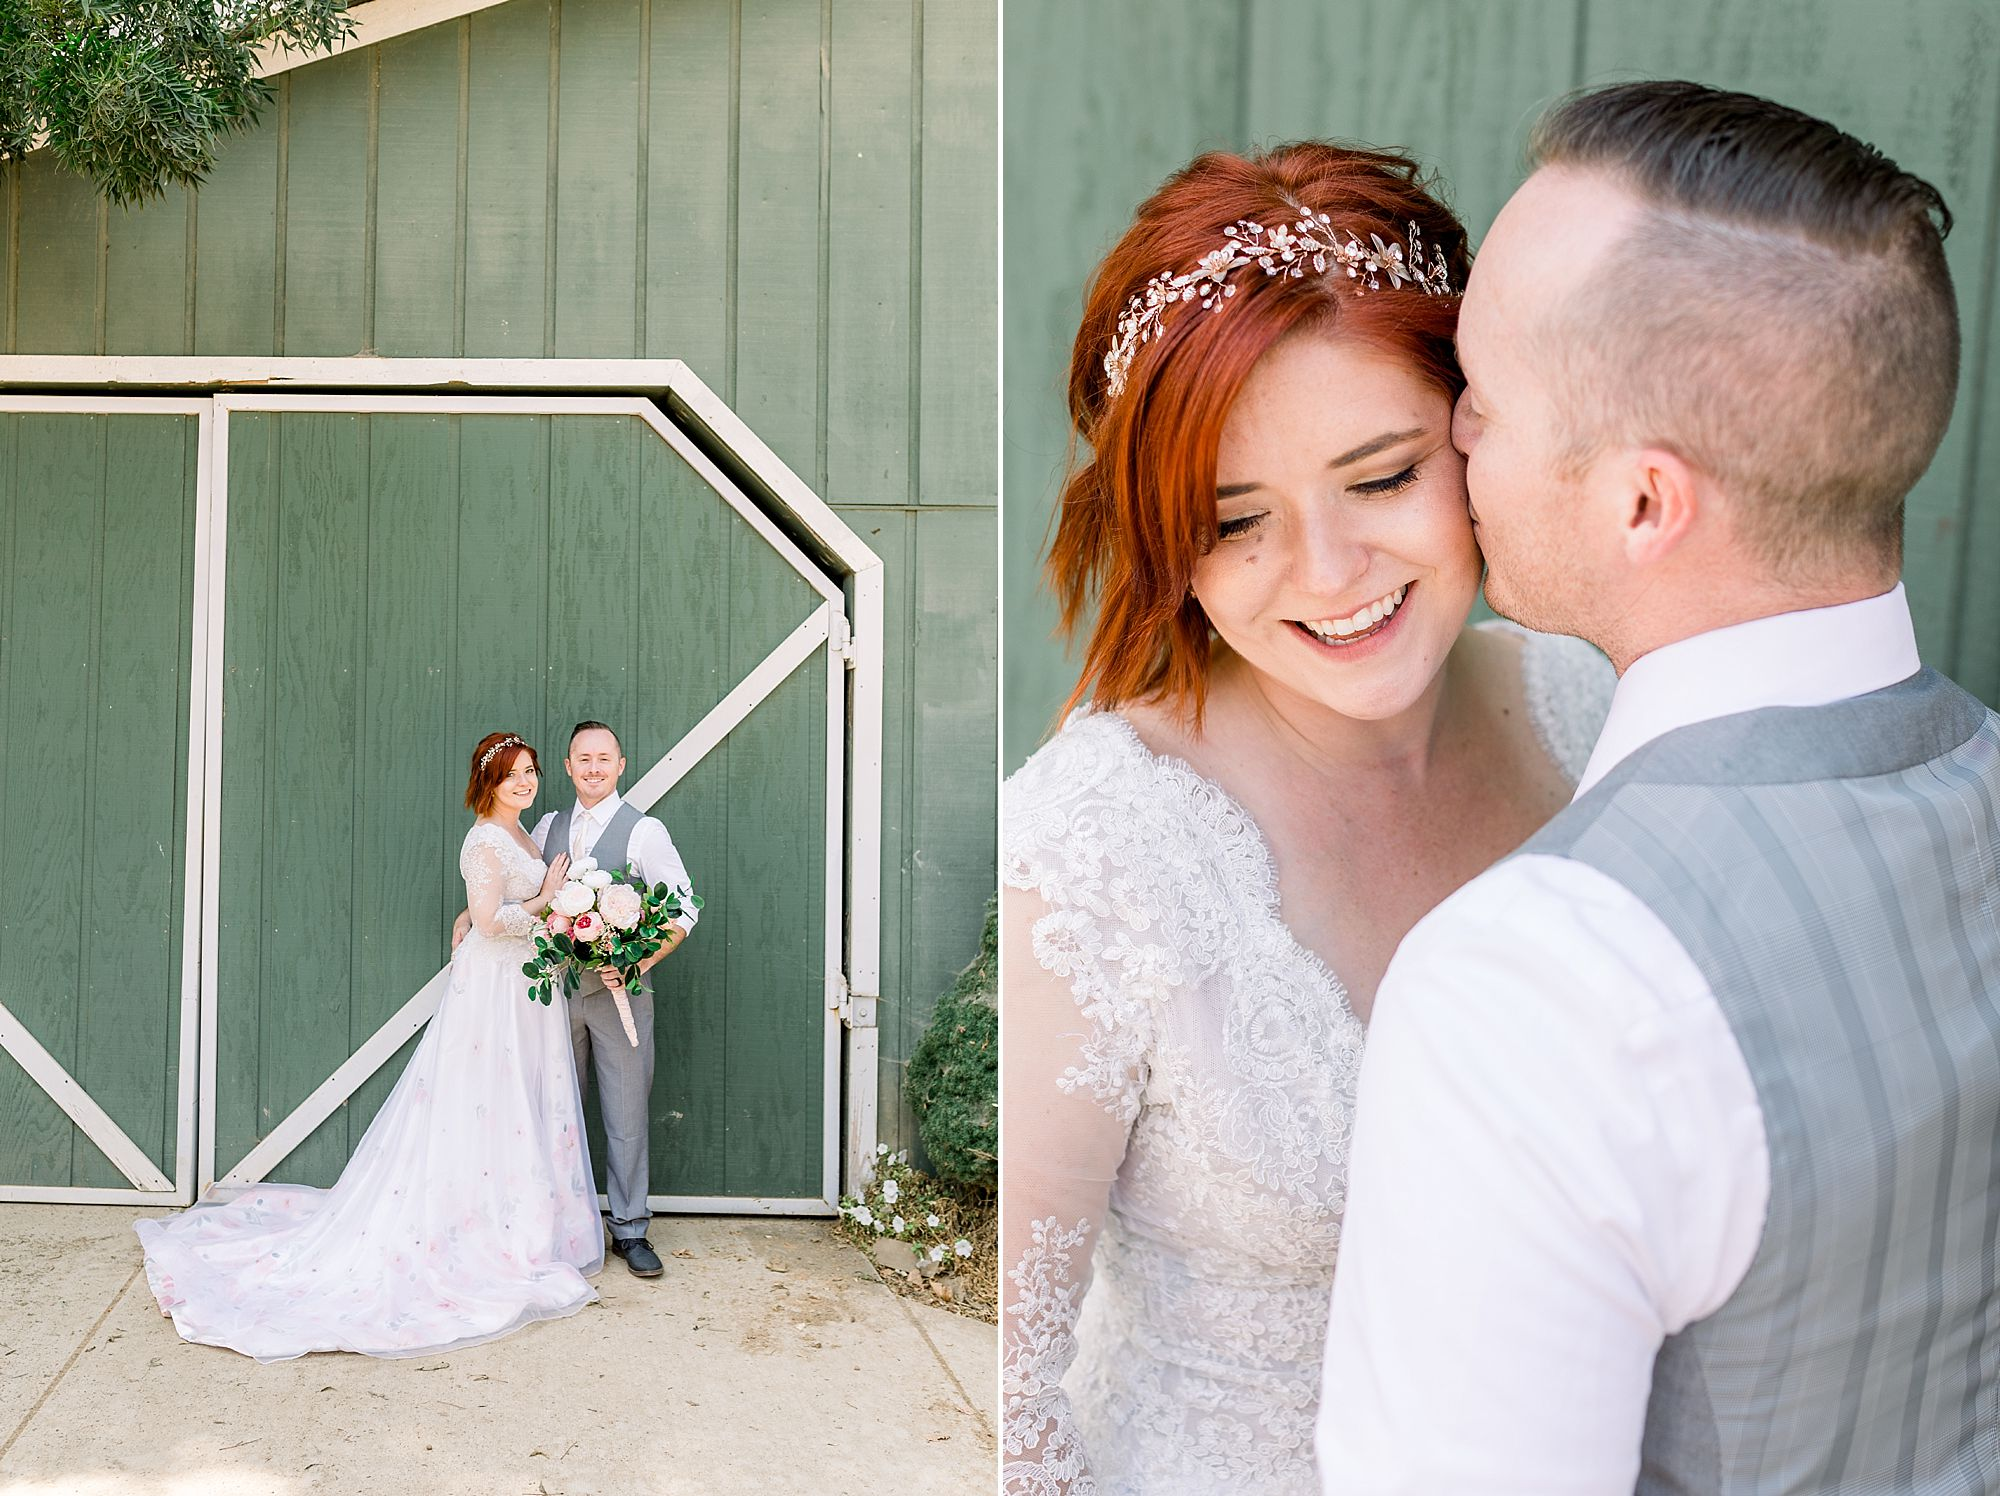 Bishops Pumpkin Farm Wedding - Annie and Logan - Ashley Baumgartner - Wheatland Wedding Photographer_0030.jpg